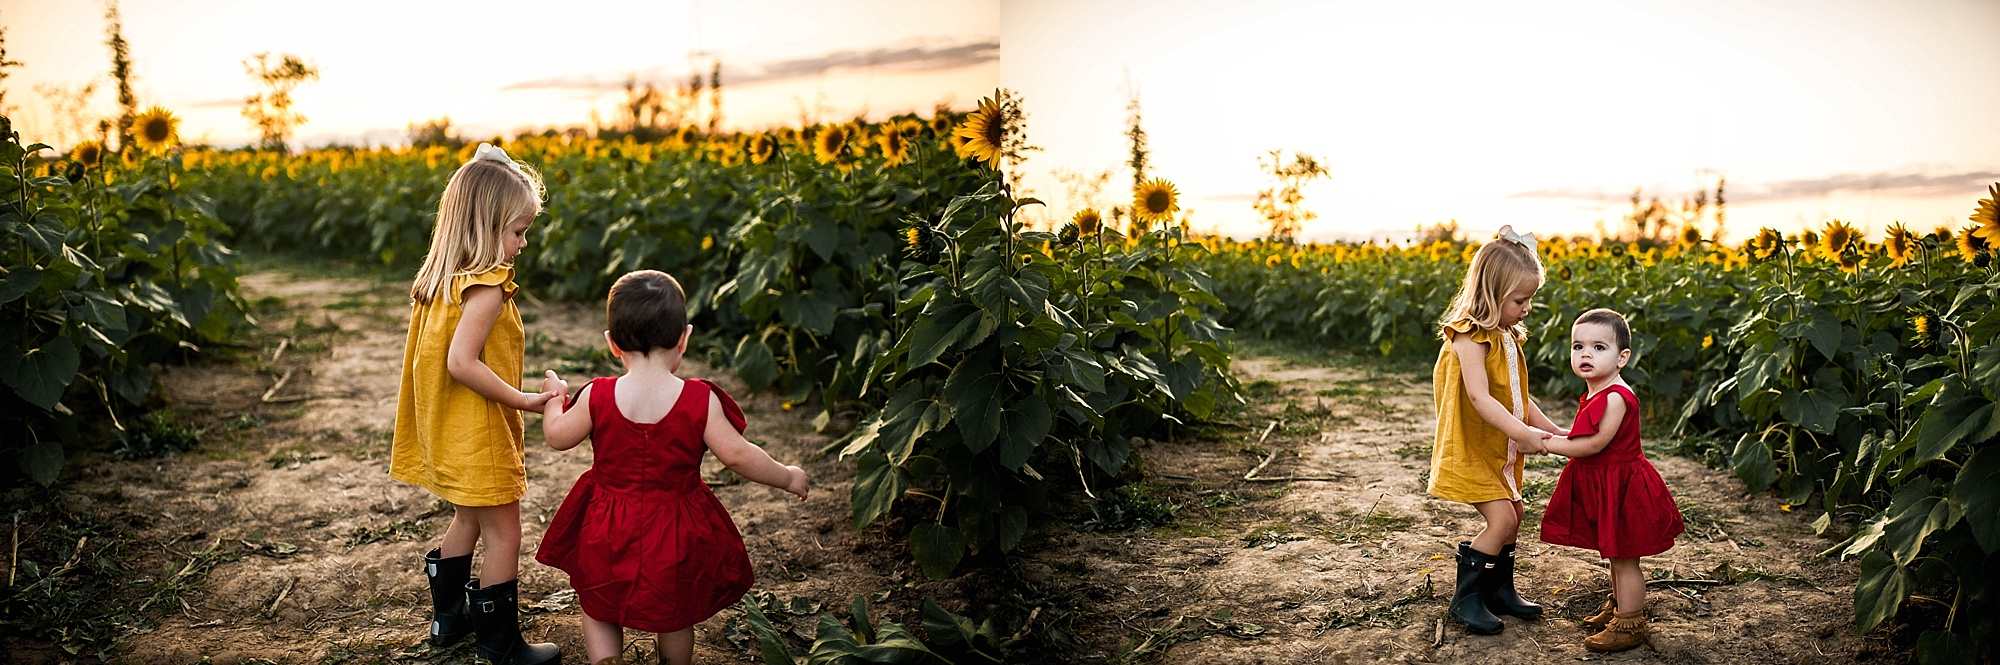 lauren-grayson-photography-cleveland-ohio-photographer-sunflower-fields-sunset-golden-hour-photo-shoot-mommy-and-me-family-child-photographer_0568.jpg